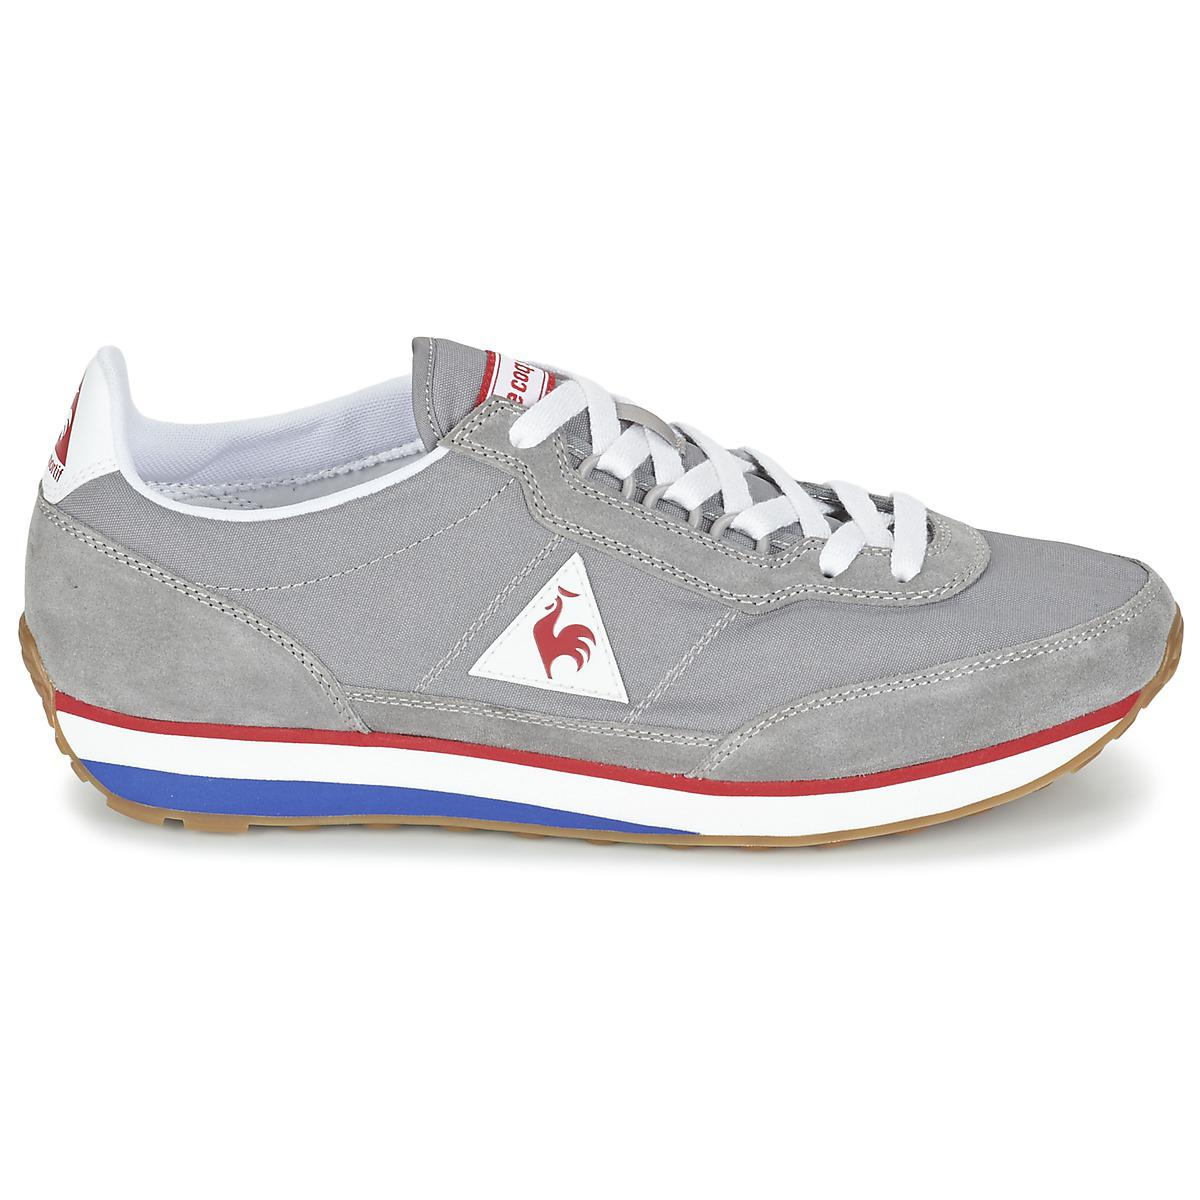 7a9aeba78c59 Le Coq Sportif Azstyle Gum Shoes (trainers) in Gray for Men - Lyst